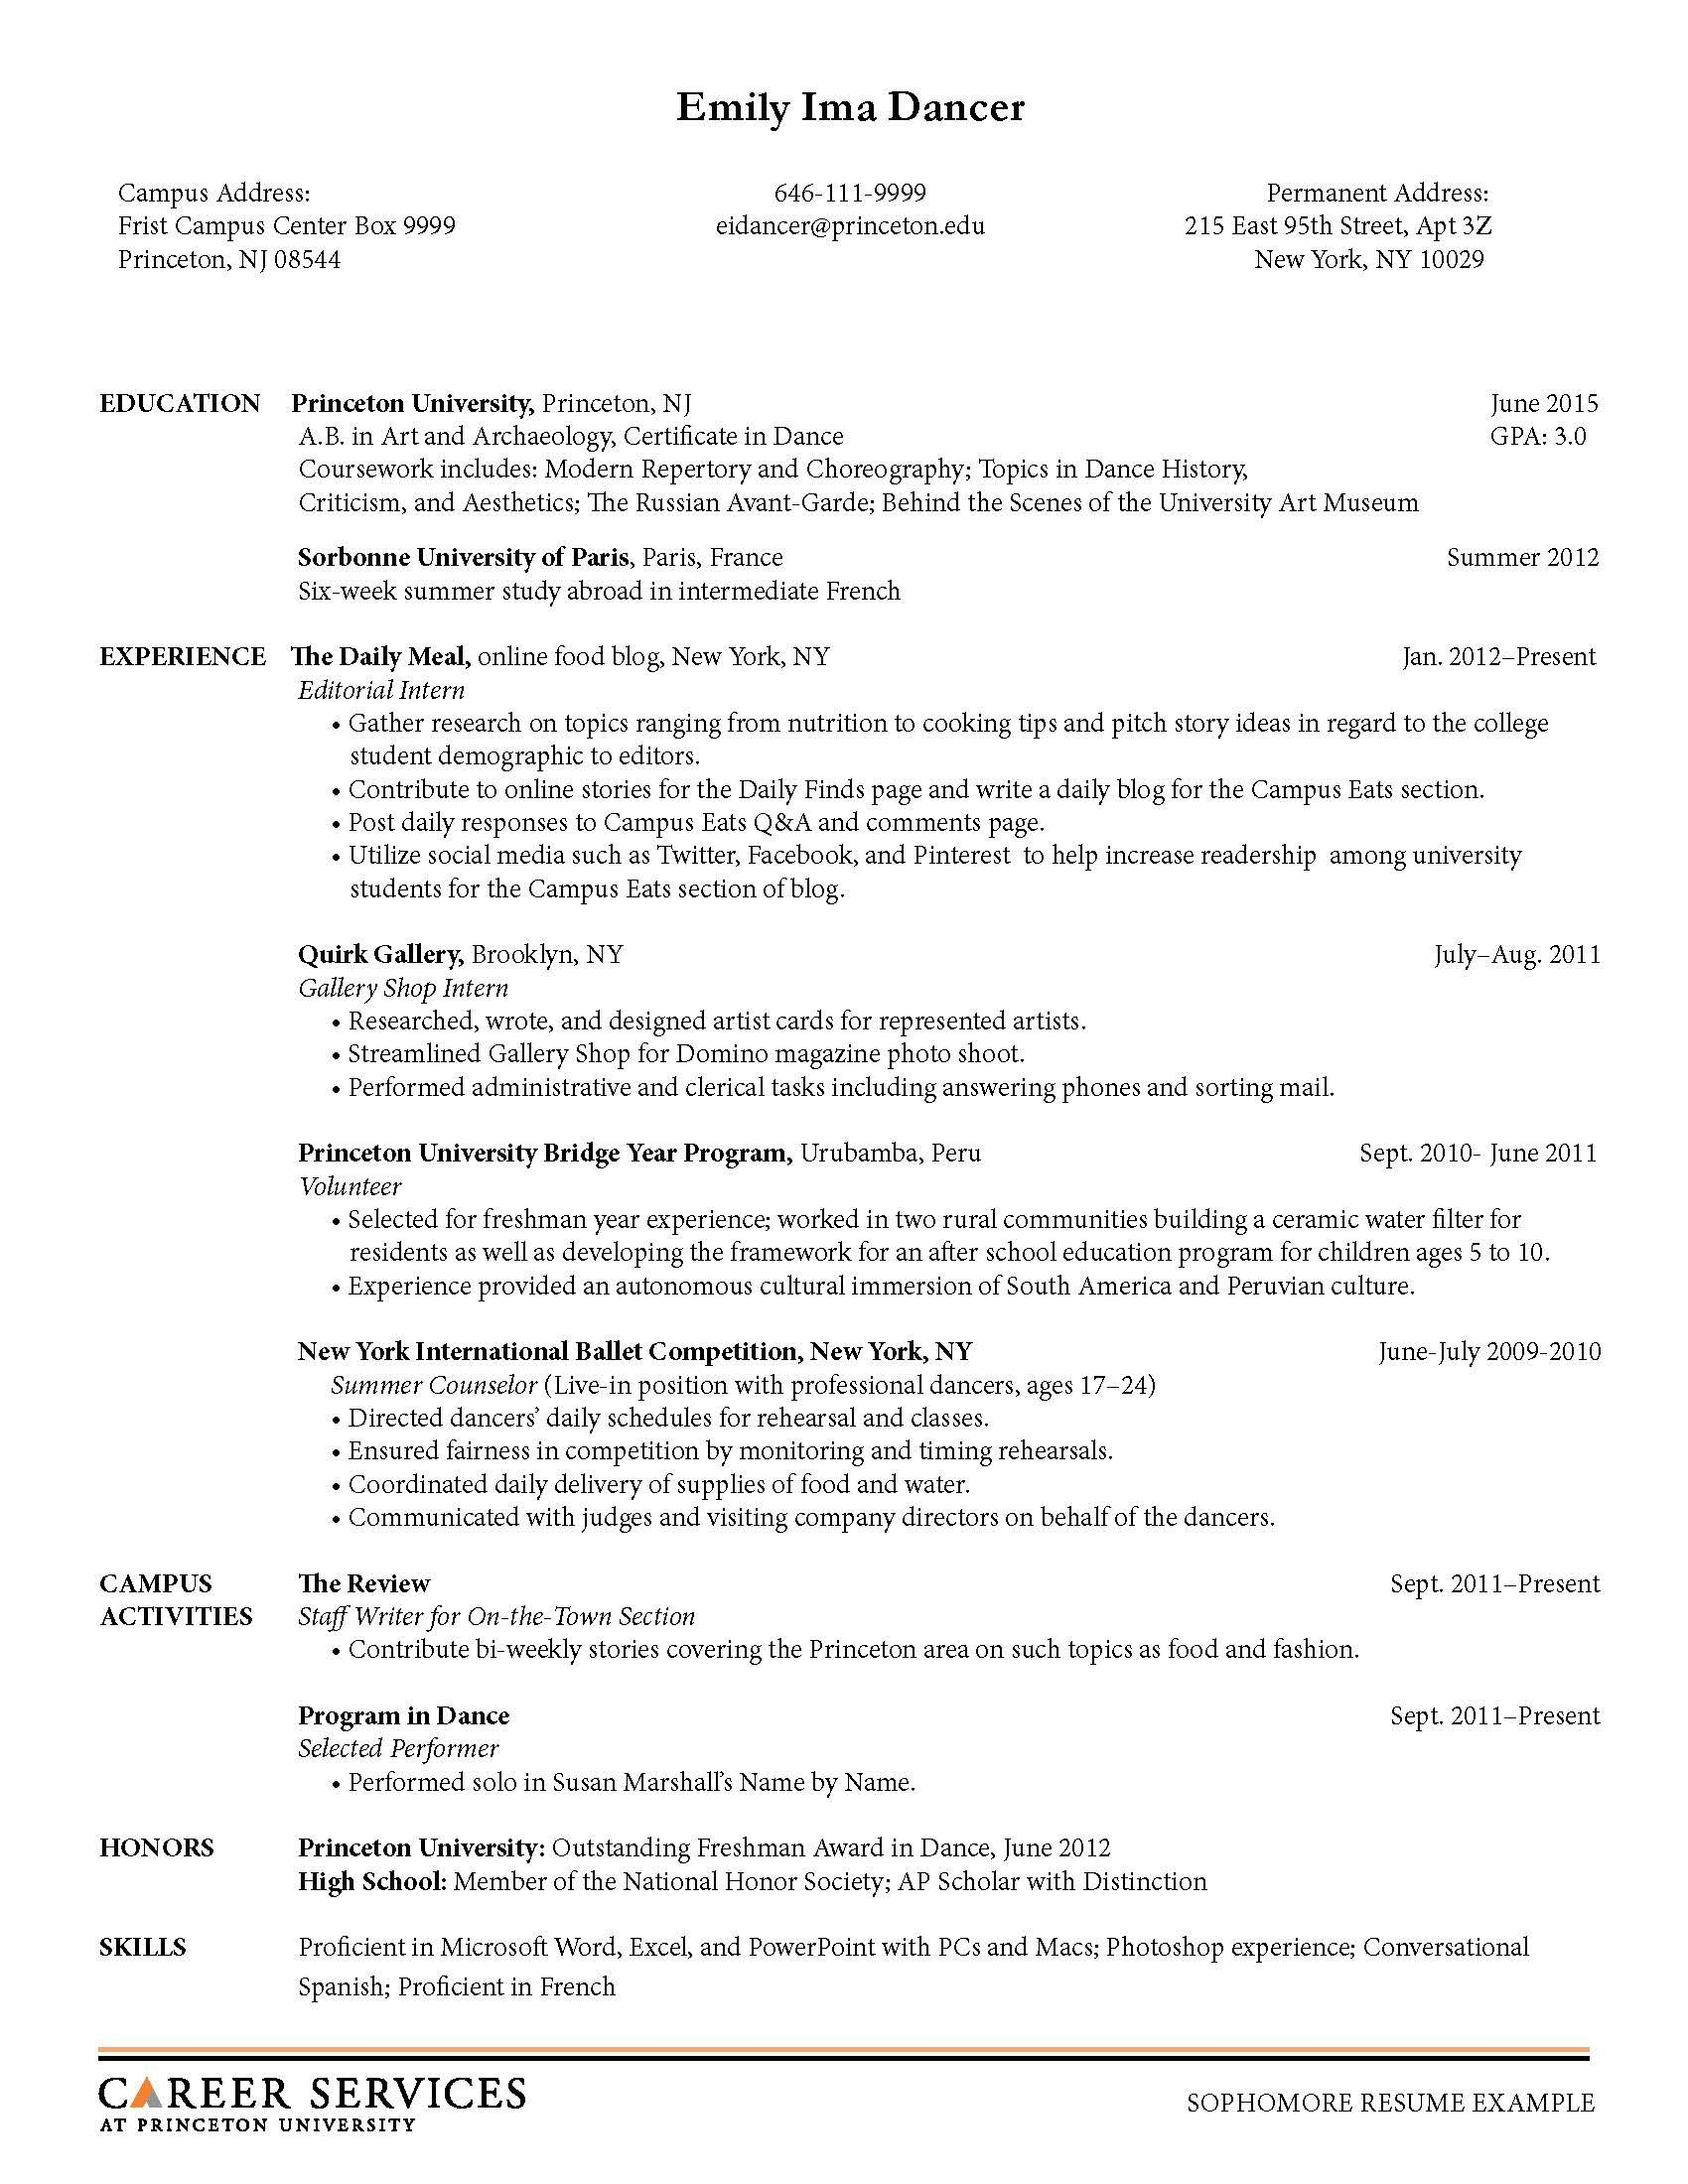 Opposenewapstandardsus  Unique Sample Resume Resume And Career On Pinterest With Excellent Rn Resume Example Besides Sample Resume For Office Manager Furthermore Adding References To A Resume With Cute Cardiac Nurse Resume Also Build Me A Resume In Addition Labor Resume And Hard Skills For Resume As Well As Example Cover Letters For Resumes Additionally Excellent Resume Templates From Pinterestcom With Opposenewapstandardsus  Excellent Sample Resume Resume And Career On Pinterest With Cute Rn Resume Example Besides Sample Resume For Office Manager Furthermore Adding References To A Resume And Unique Cardiac Nurse Resume Also Build Me A Resume In Addition Labor Resume From Pinterestcom